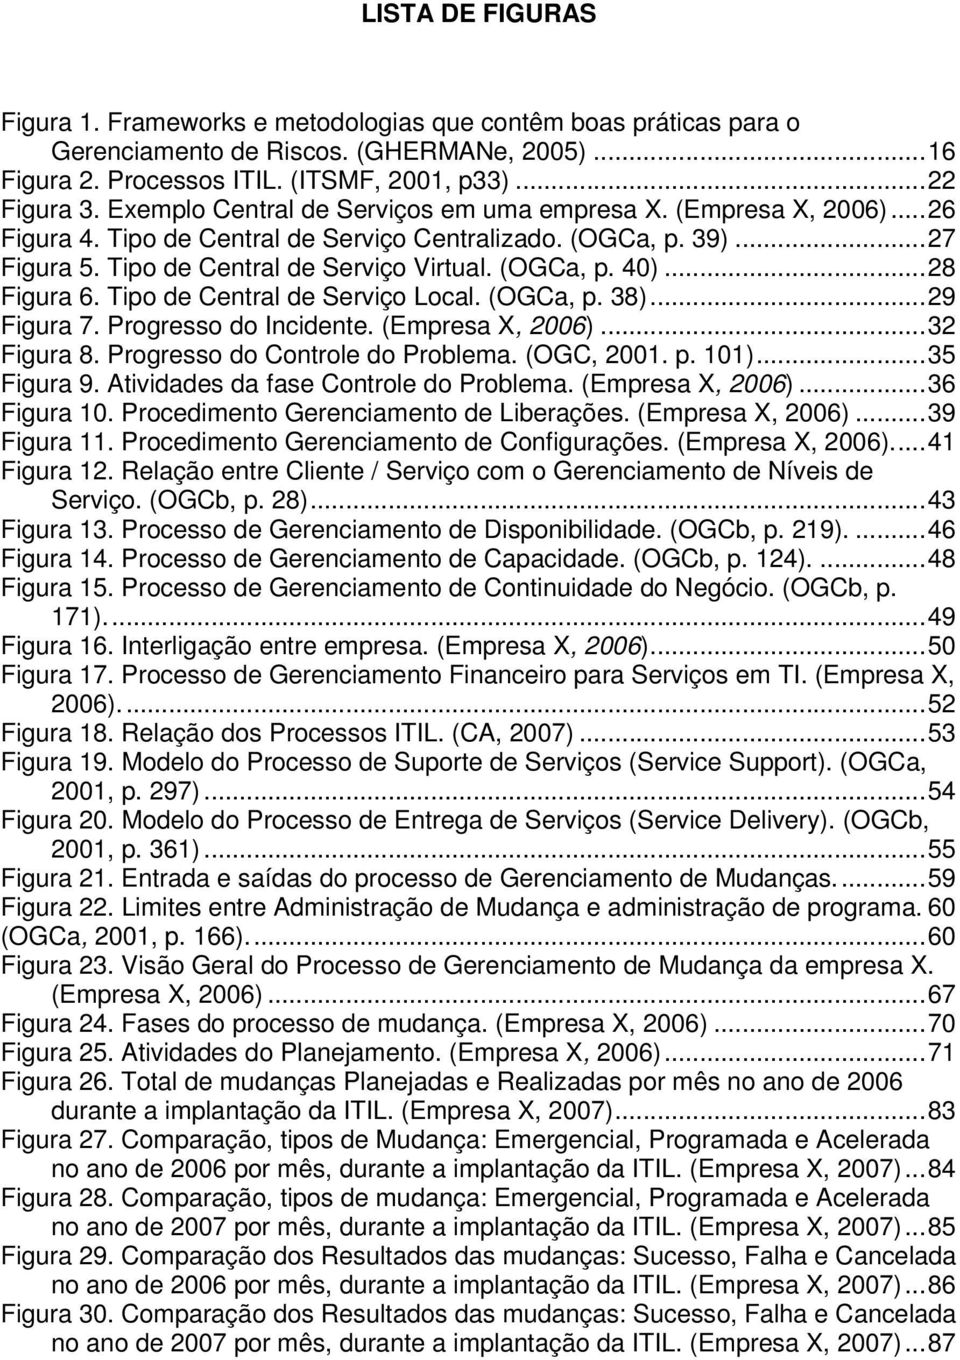 ..28 Figura 6. Tipo de Central de Serviço Local. (OGCa, p. 38)...29 Figura 7. Progresso do Incidente. (Empresa X, 2006)...32 Figura 8. Progresso do Controle do Problema. (OGC, 2001. p. 101).